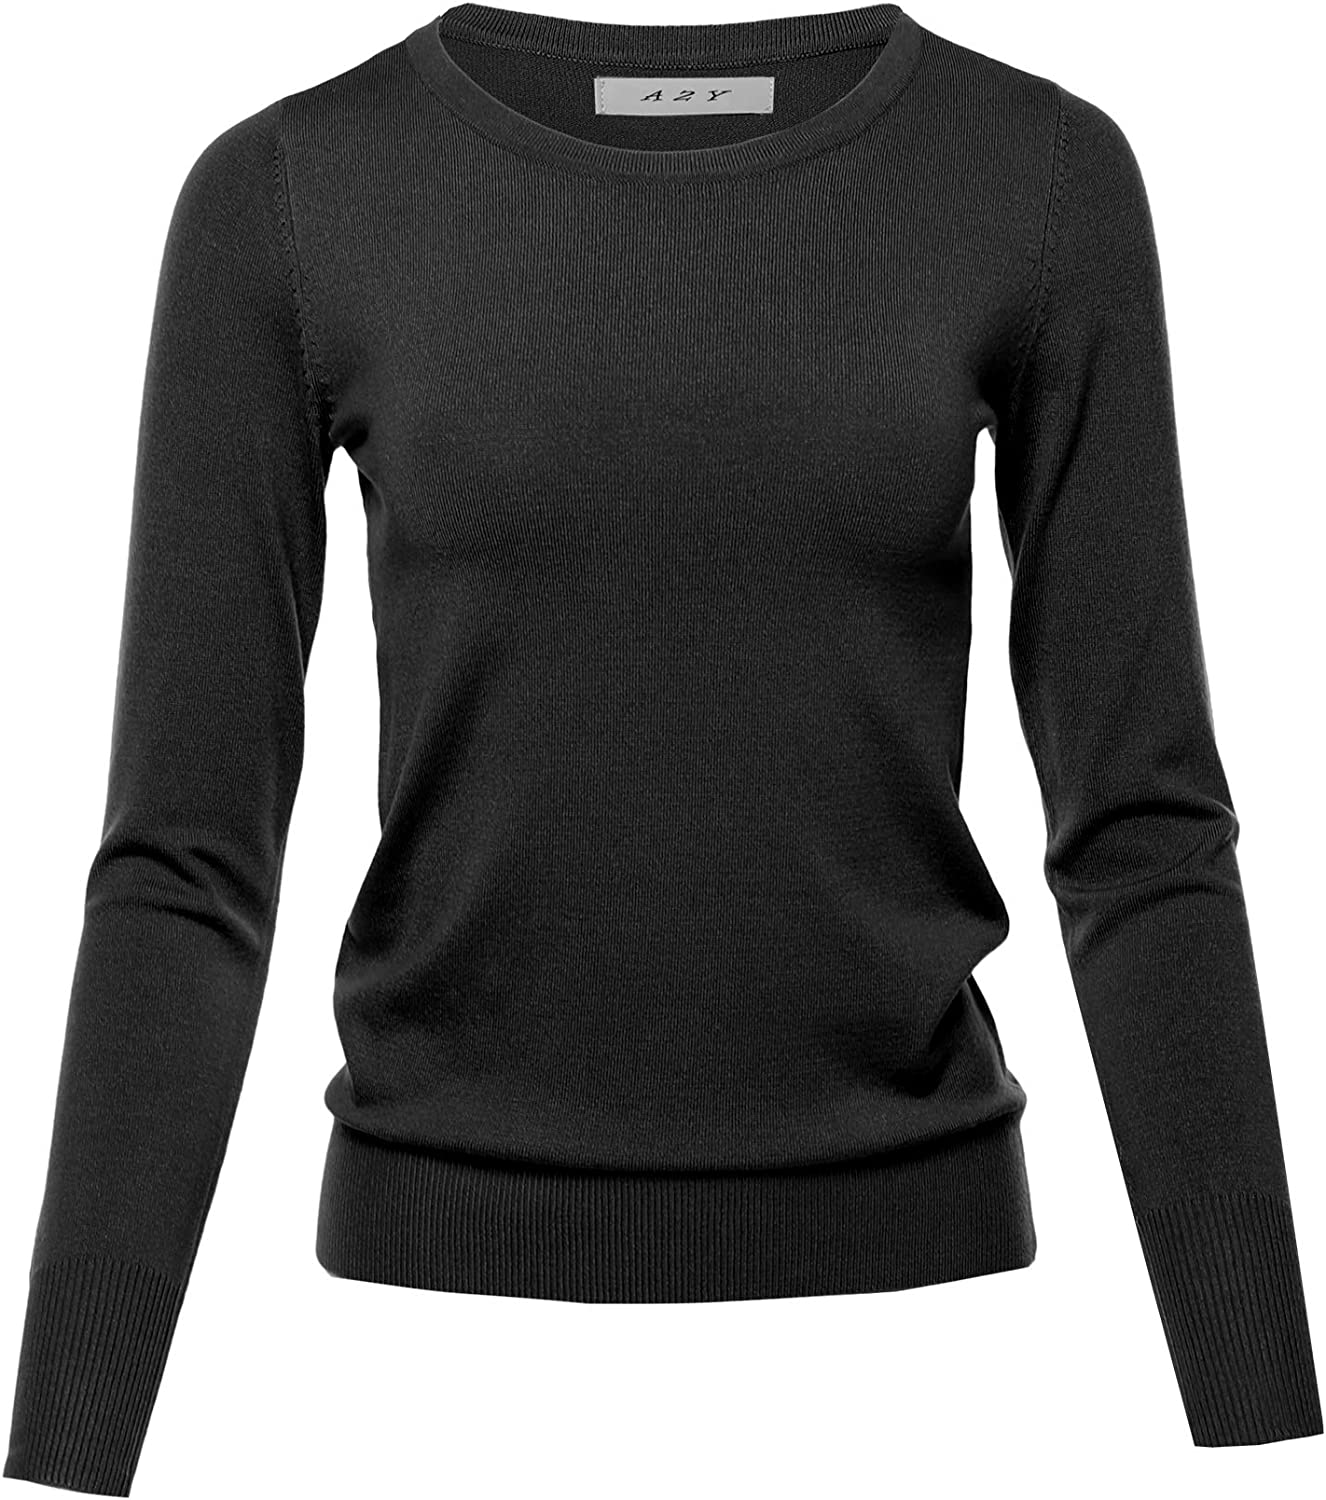 Women's Fitted Crew Neck Long Pullover Credence Sleeve Classic Outstanding Sweater